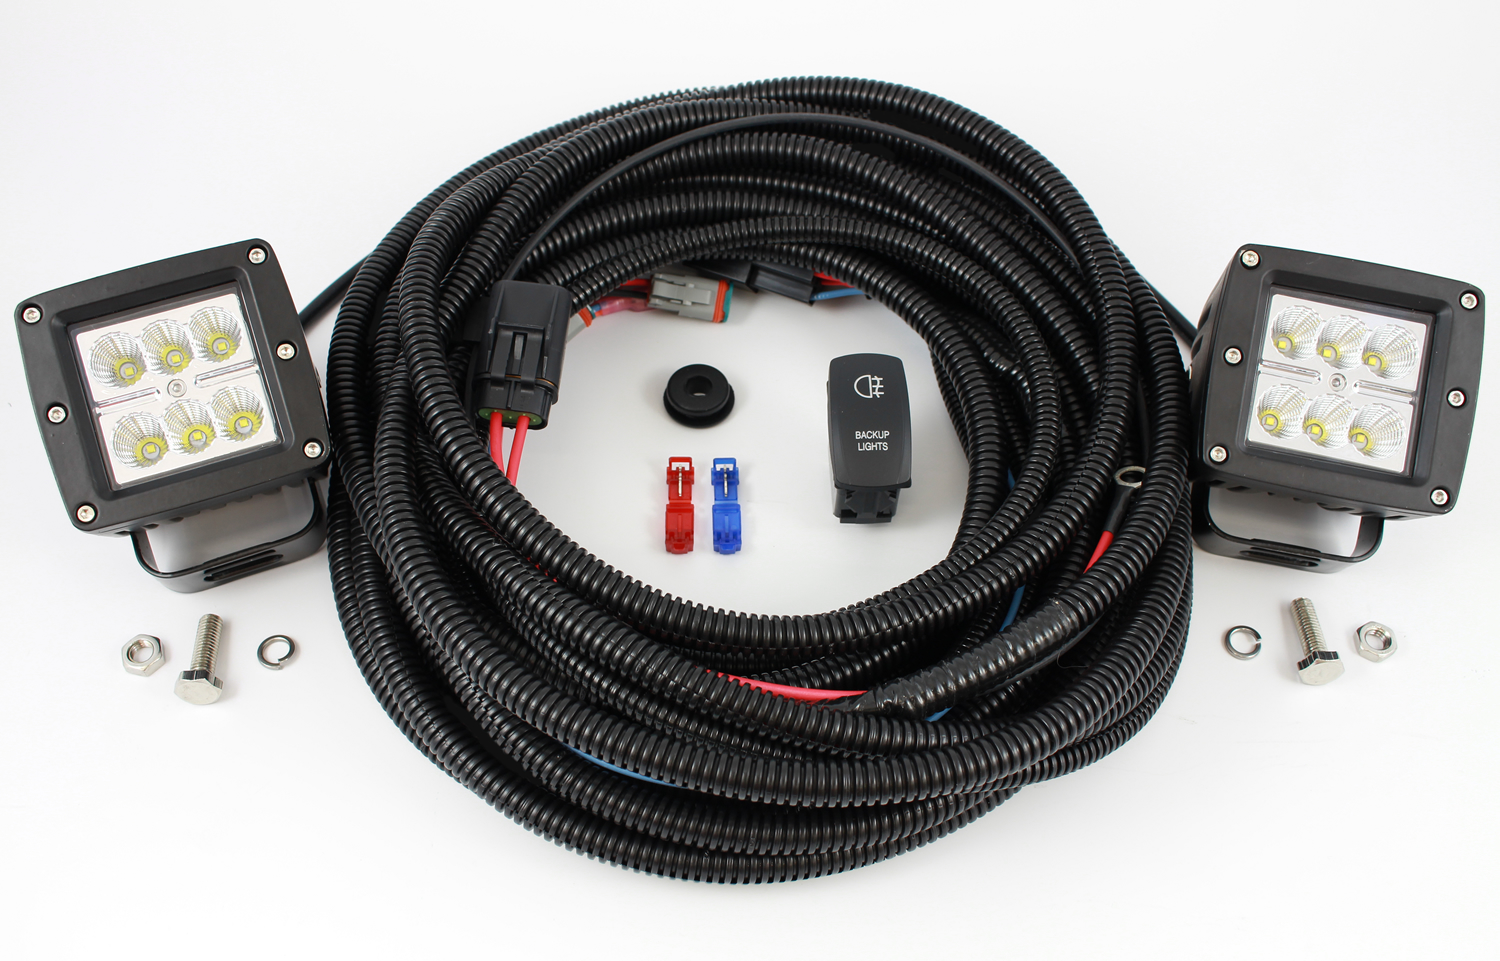 Complete Truck Suv Backup Reverse Lighting Kit With Rigid Addition Trailer Wiring Harness Adapter On Car Starkey Auxiliary Fits All